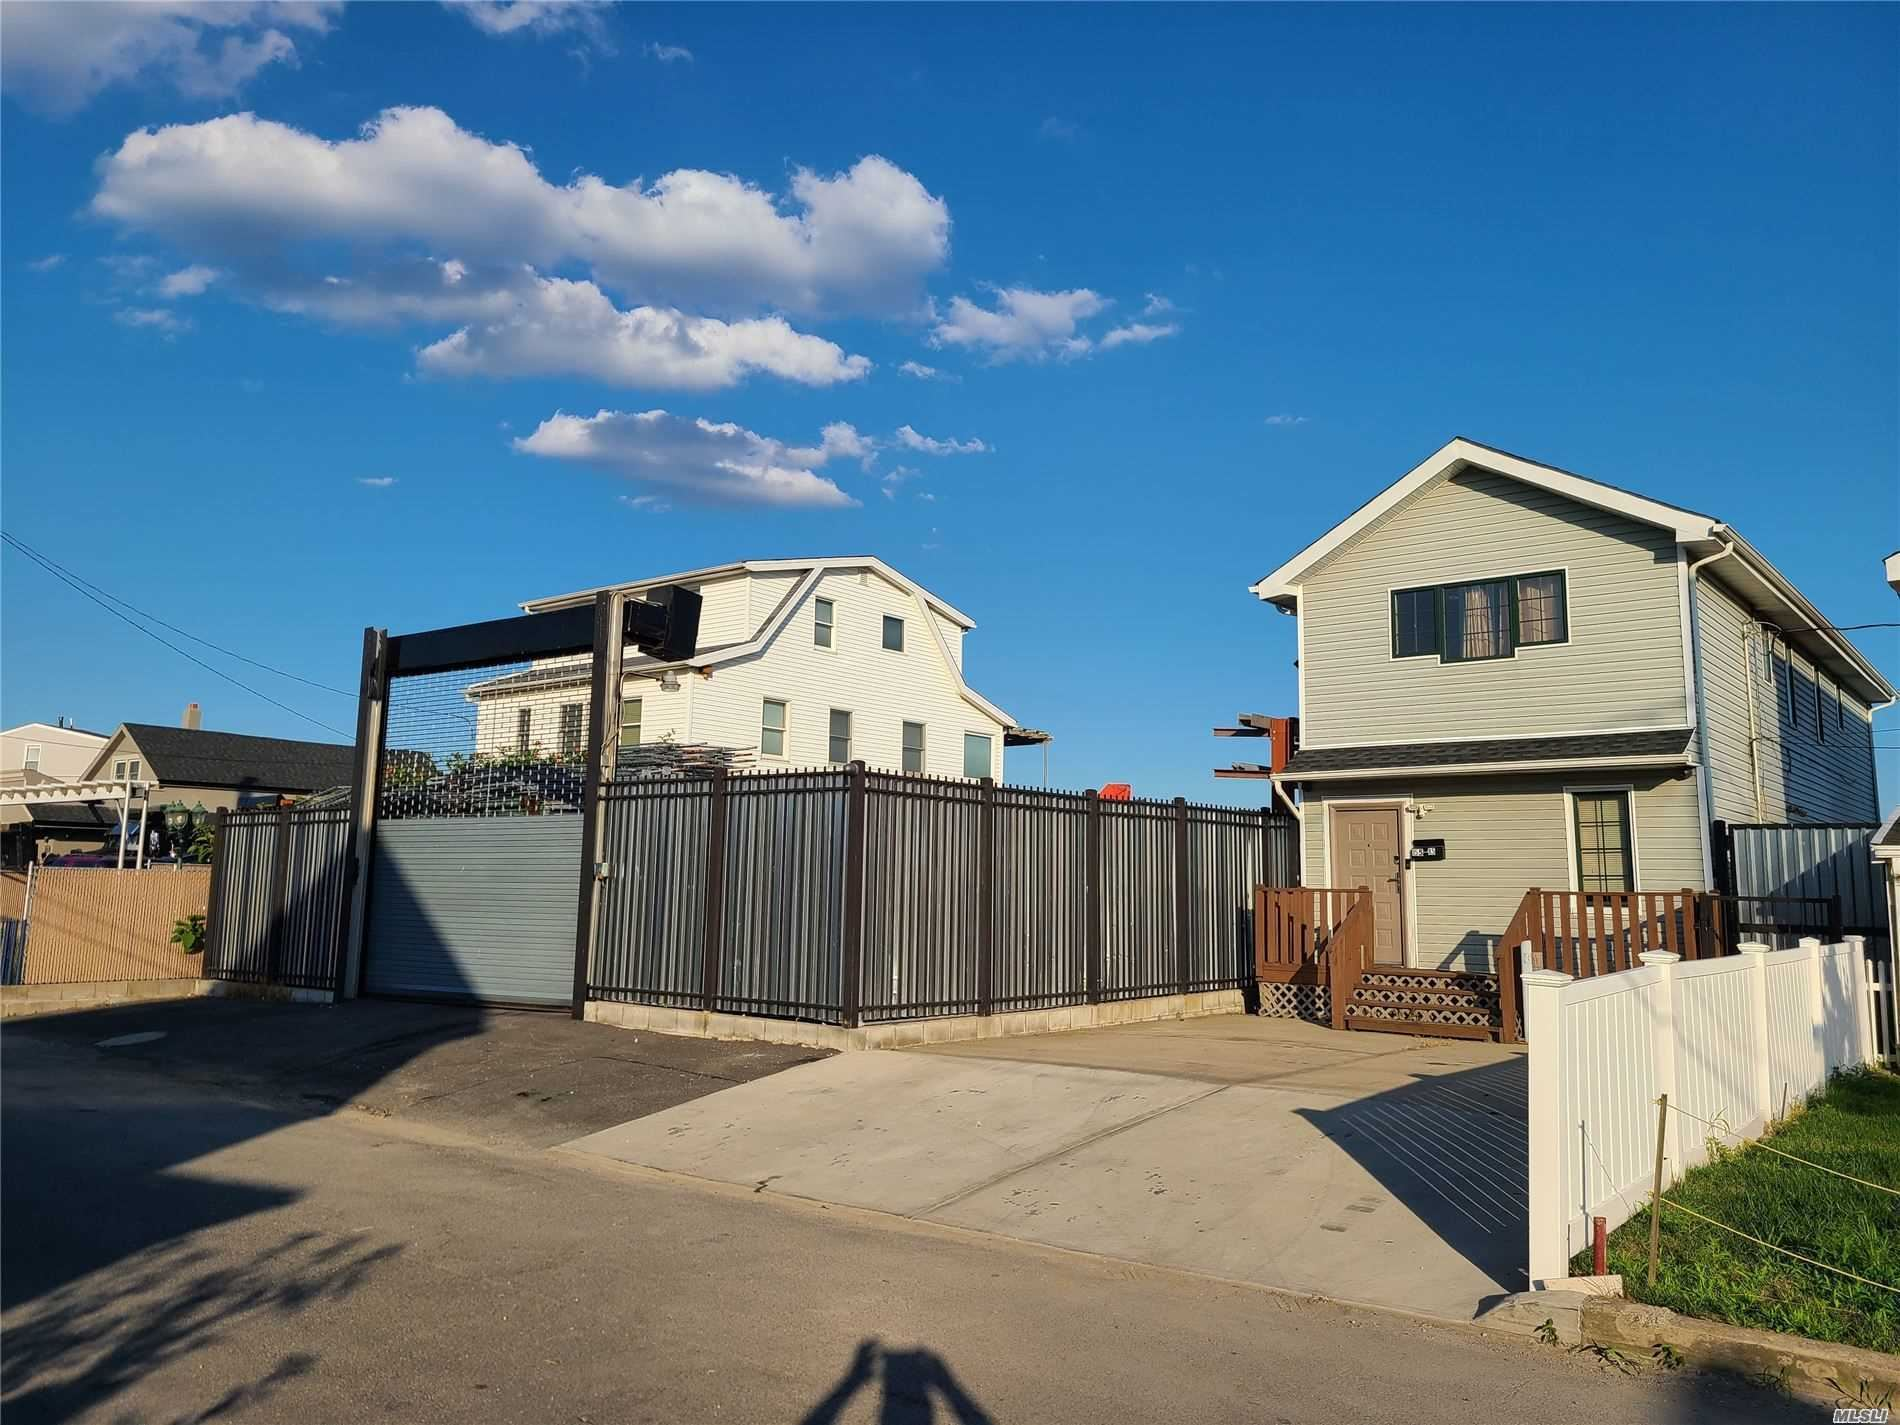 155-85 Bayview Ave, Rosedale, NY 11422 - MLS#: 3232826